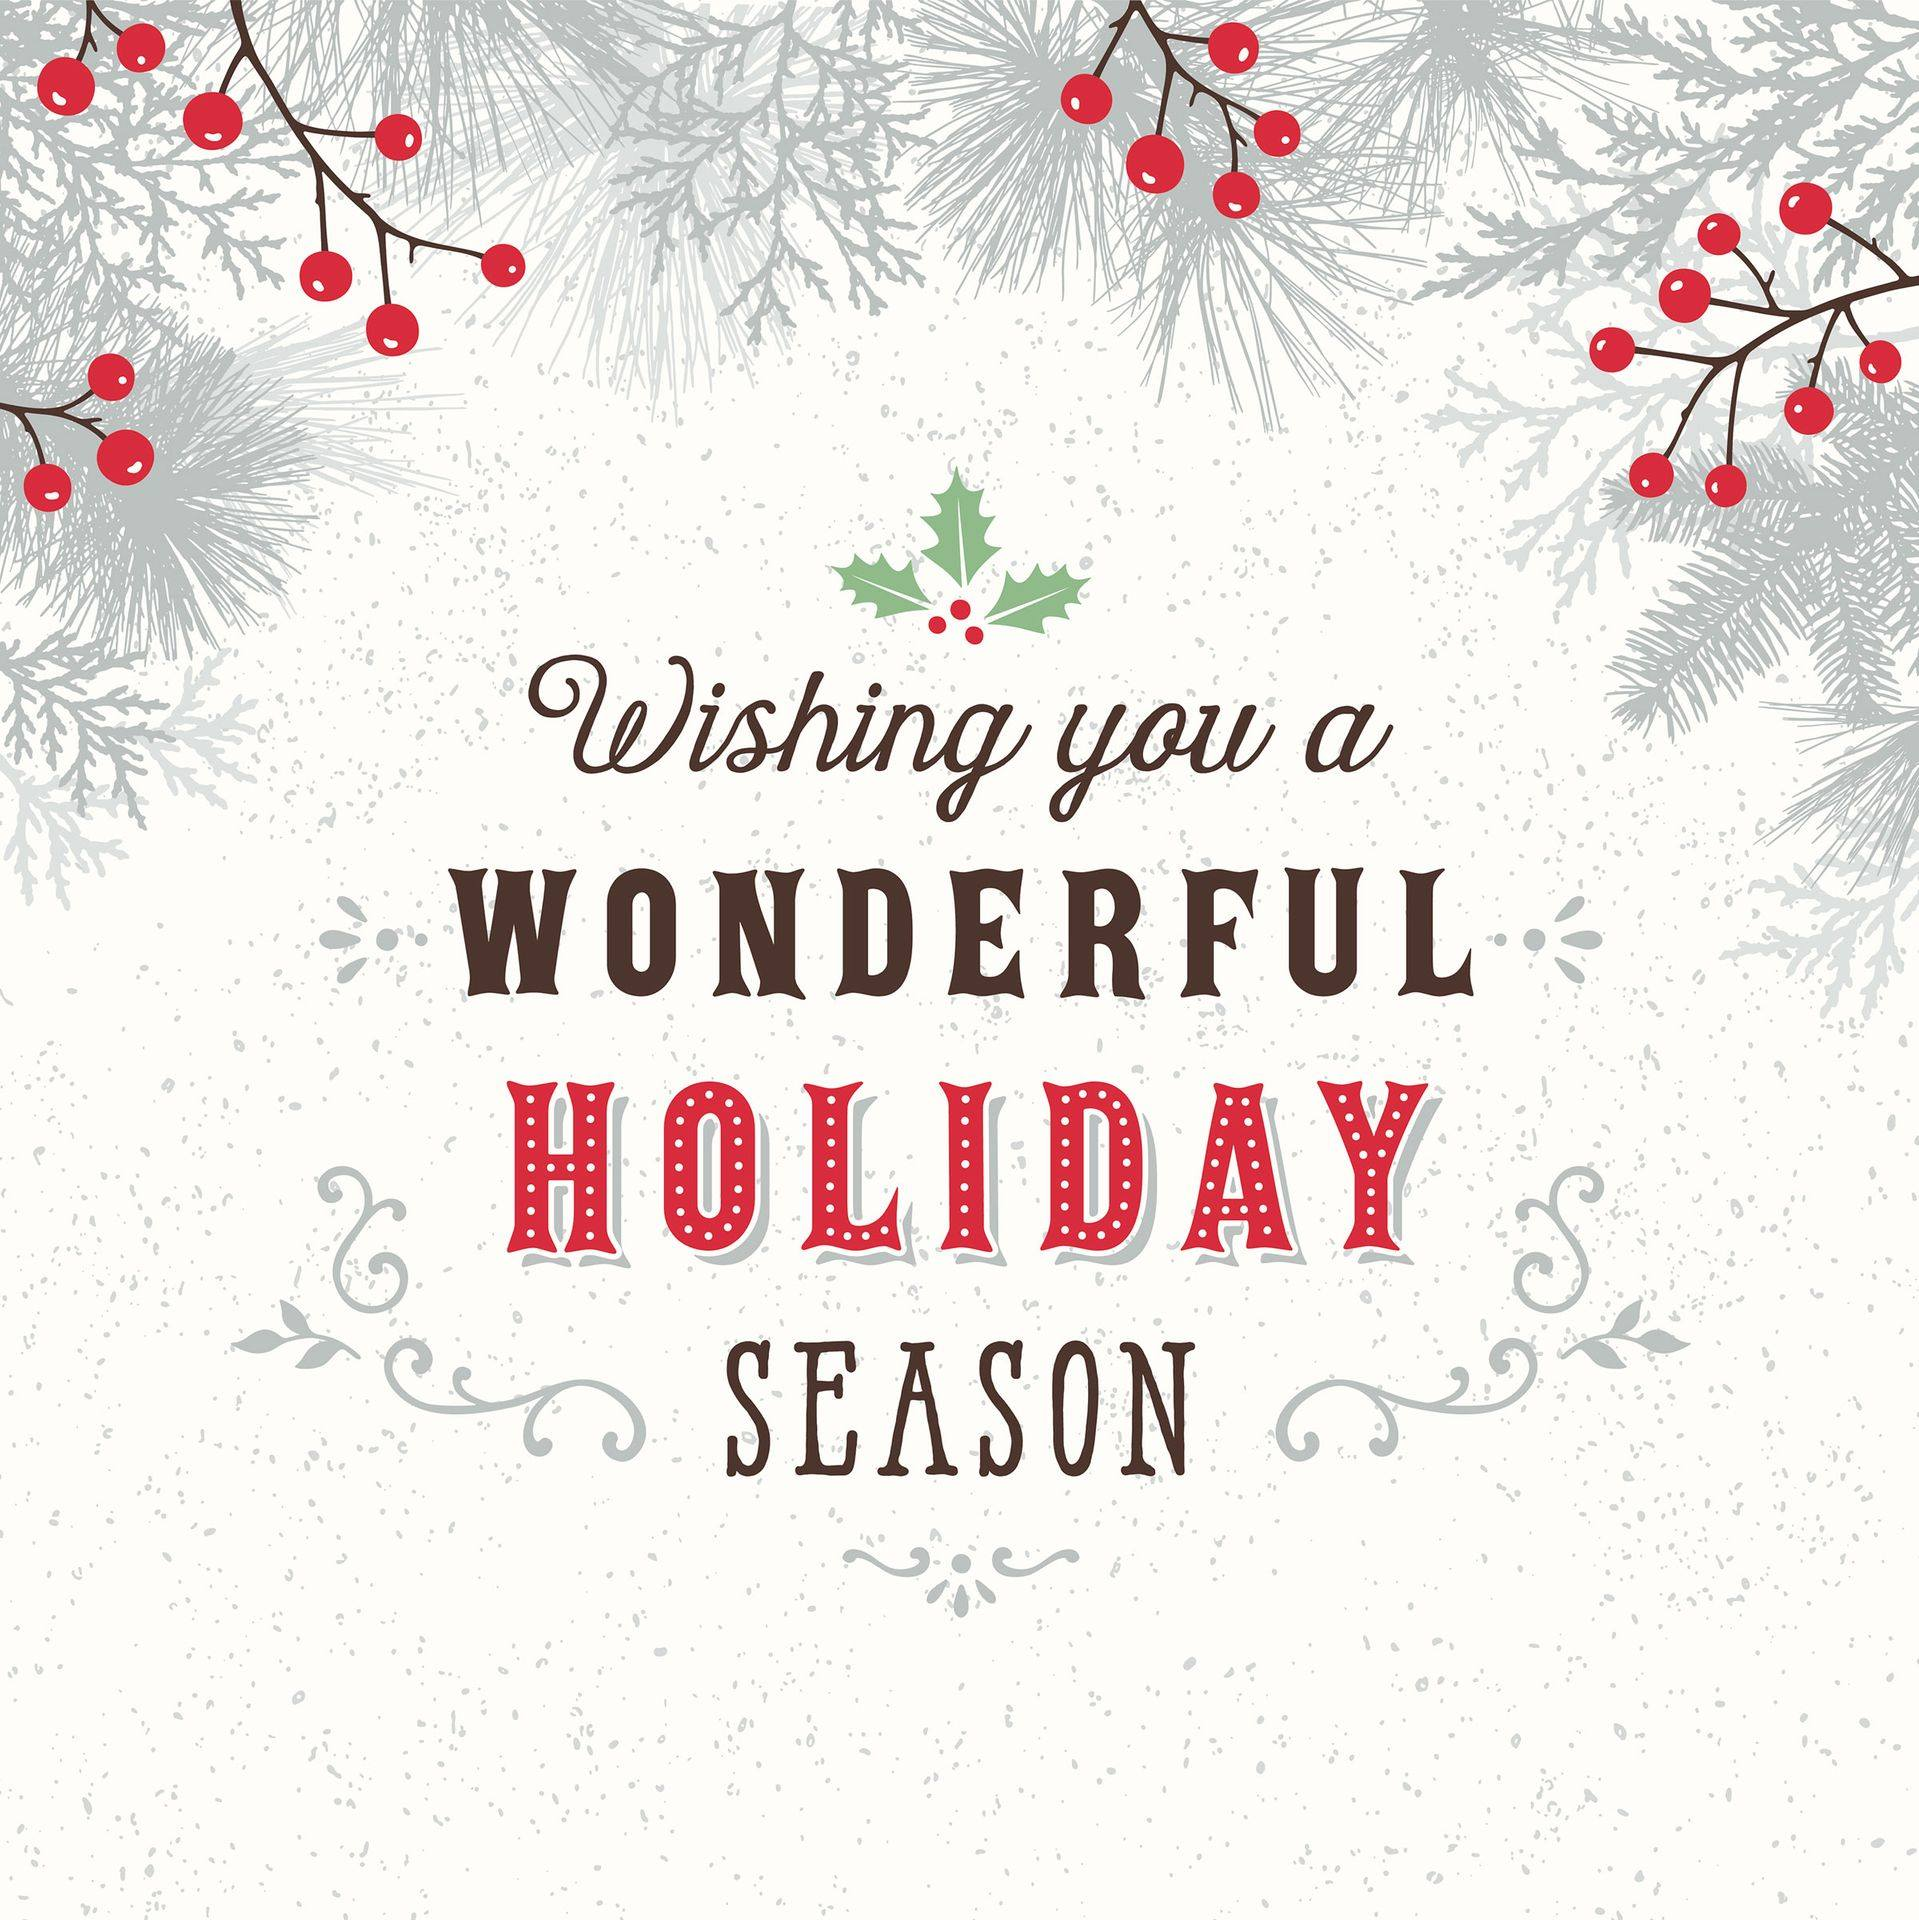 Wishing you a wonderful Holiday Season